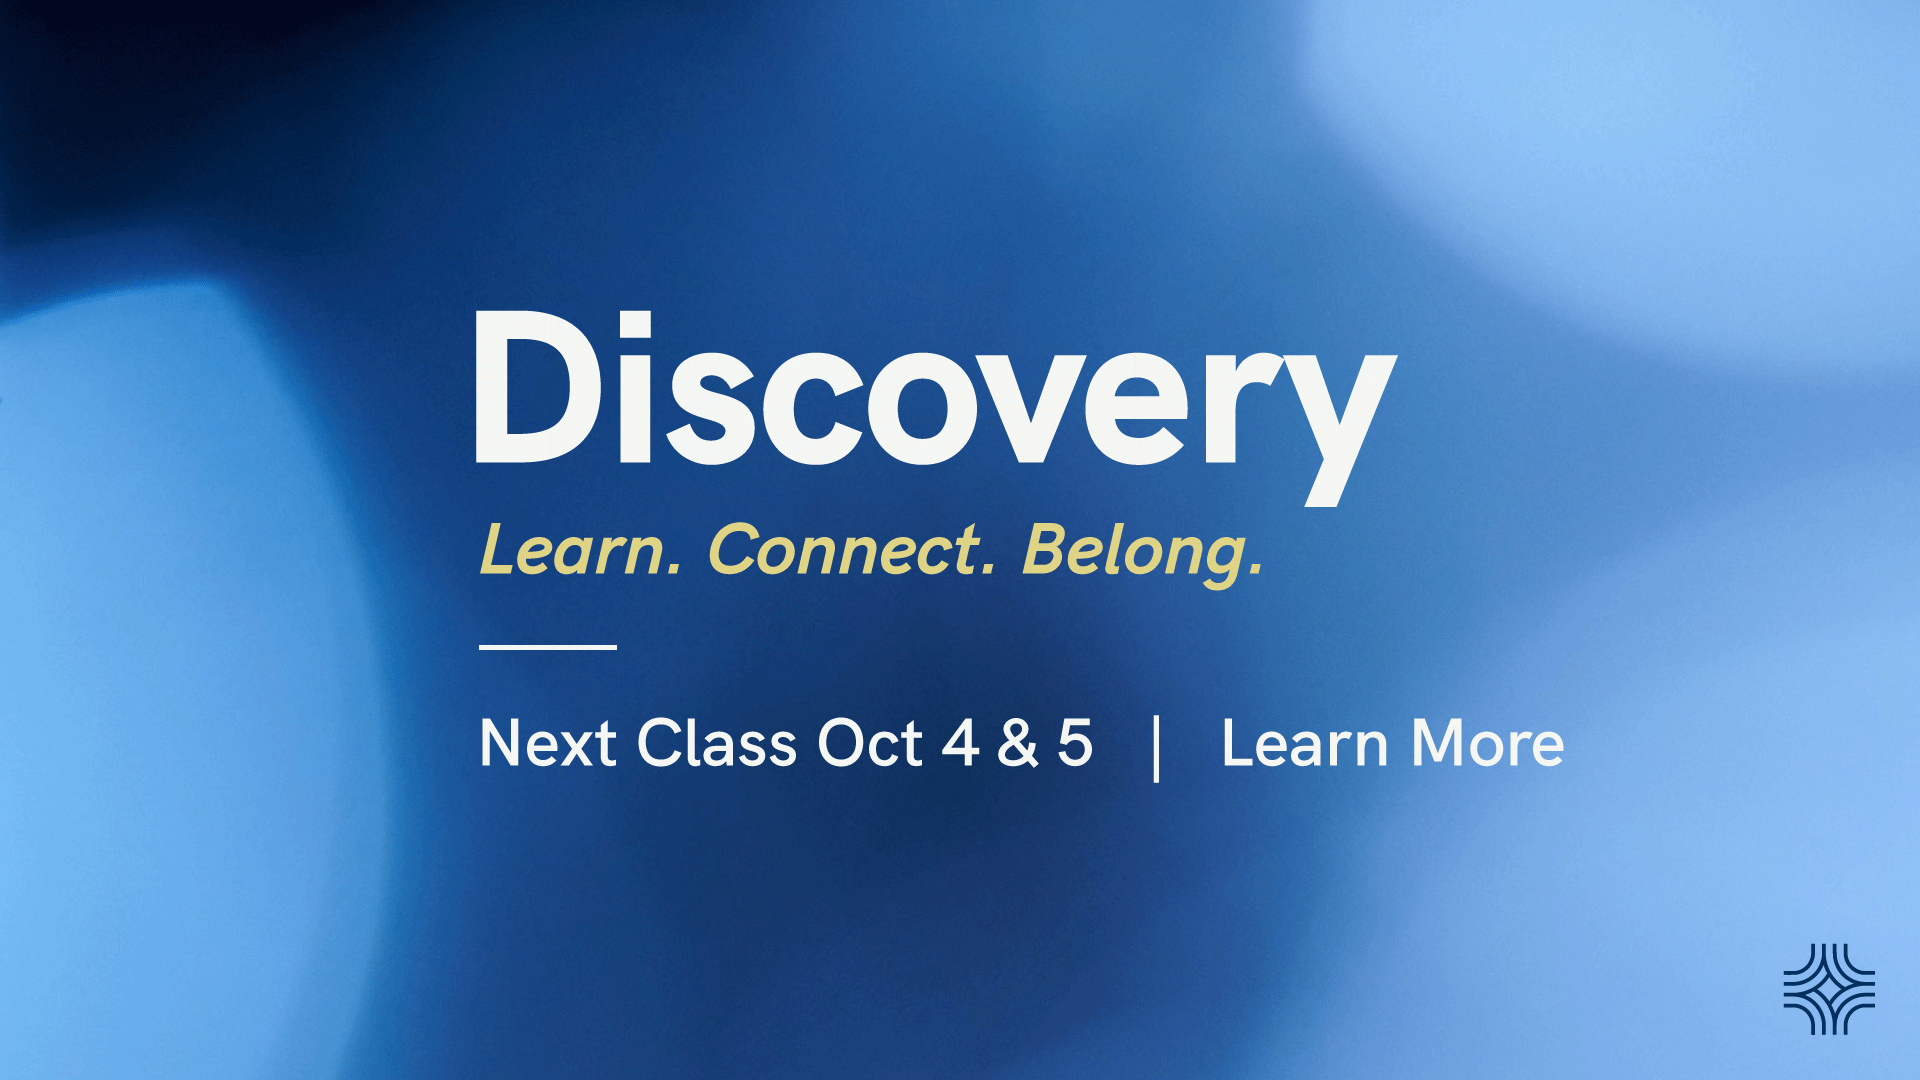 Discovery - Oct 4&5 - slide